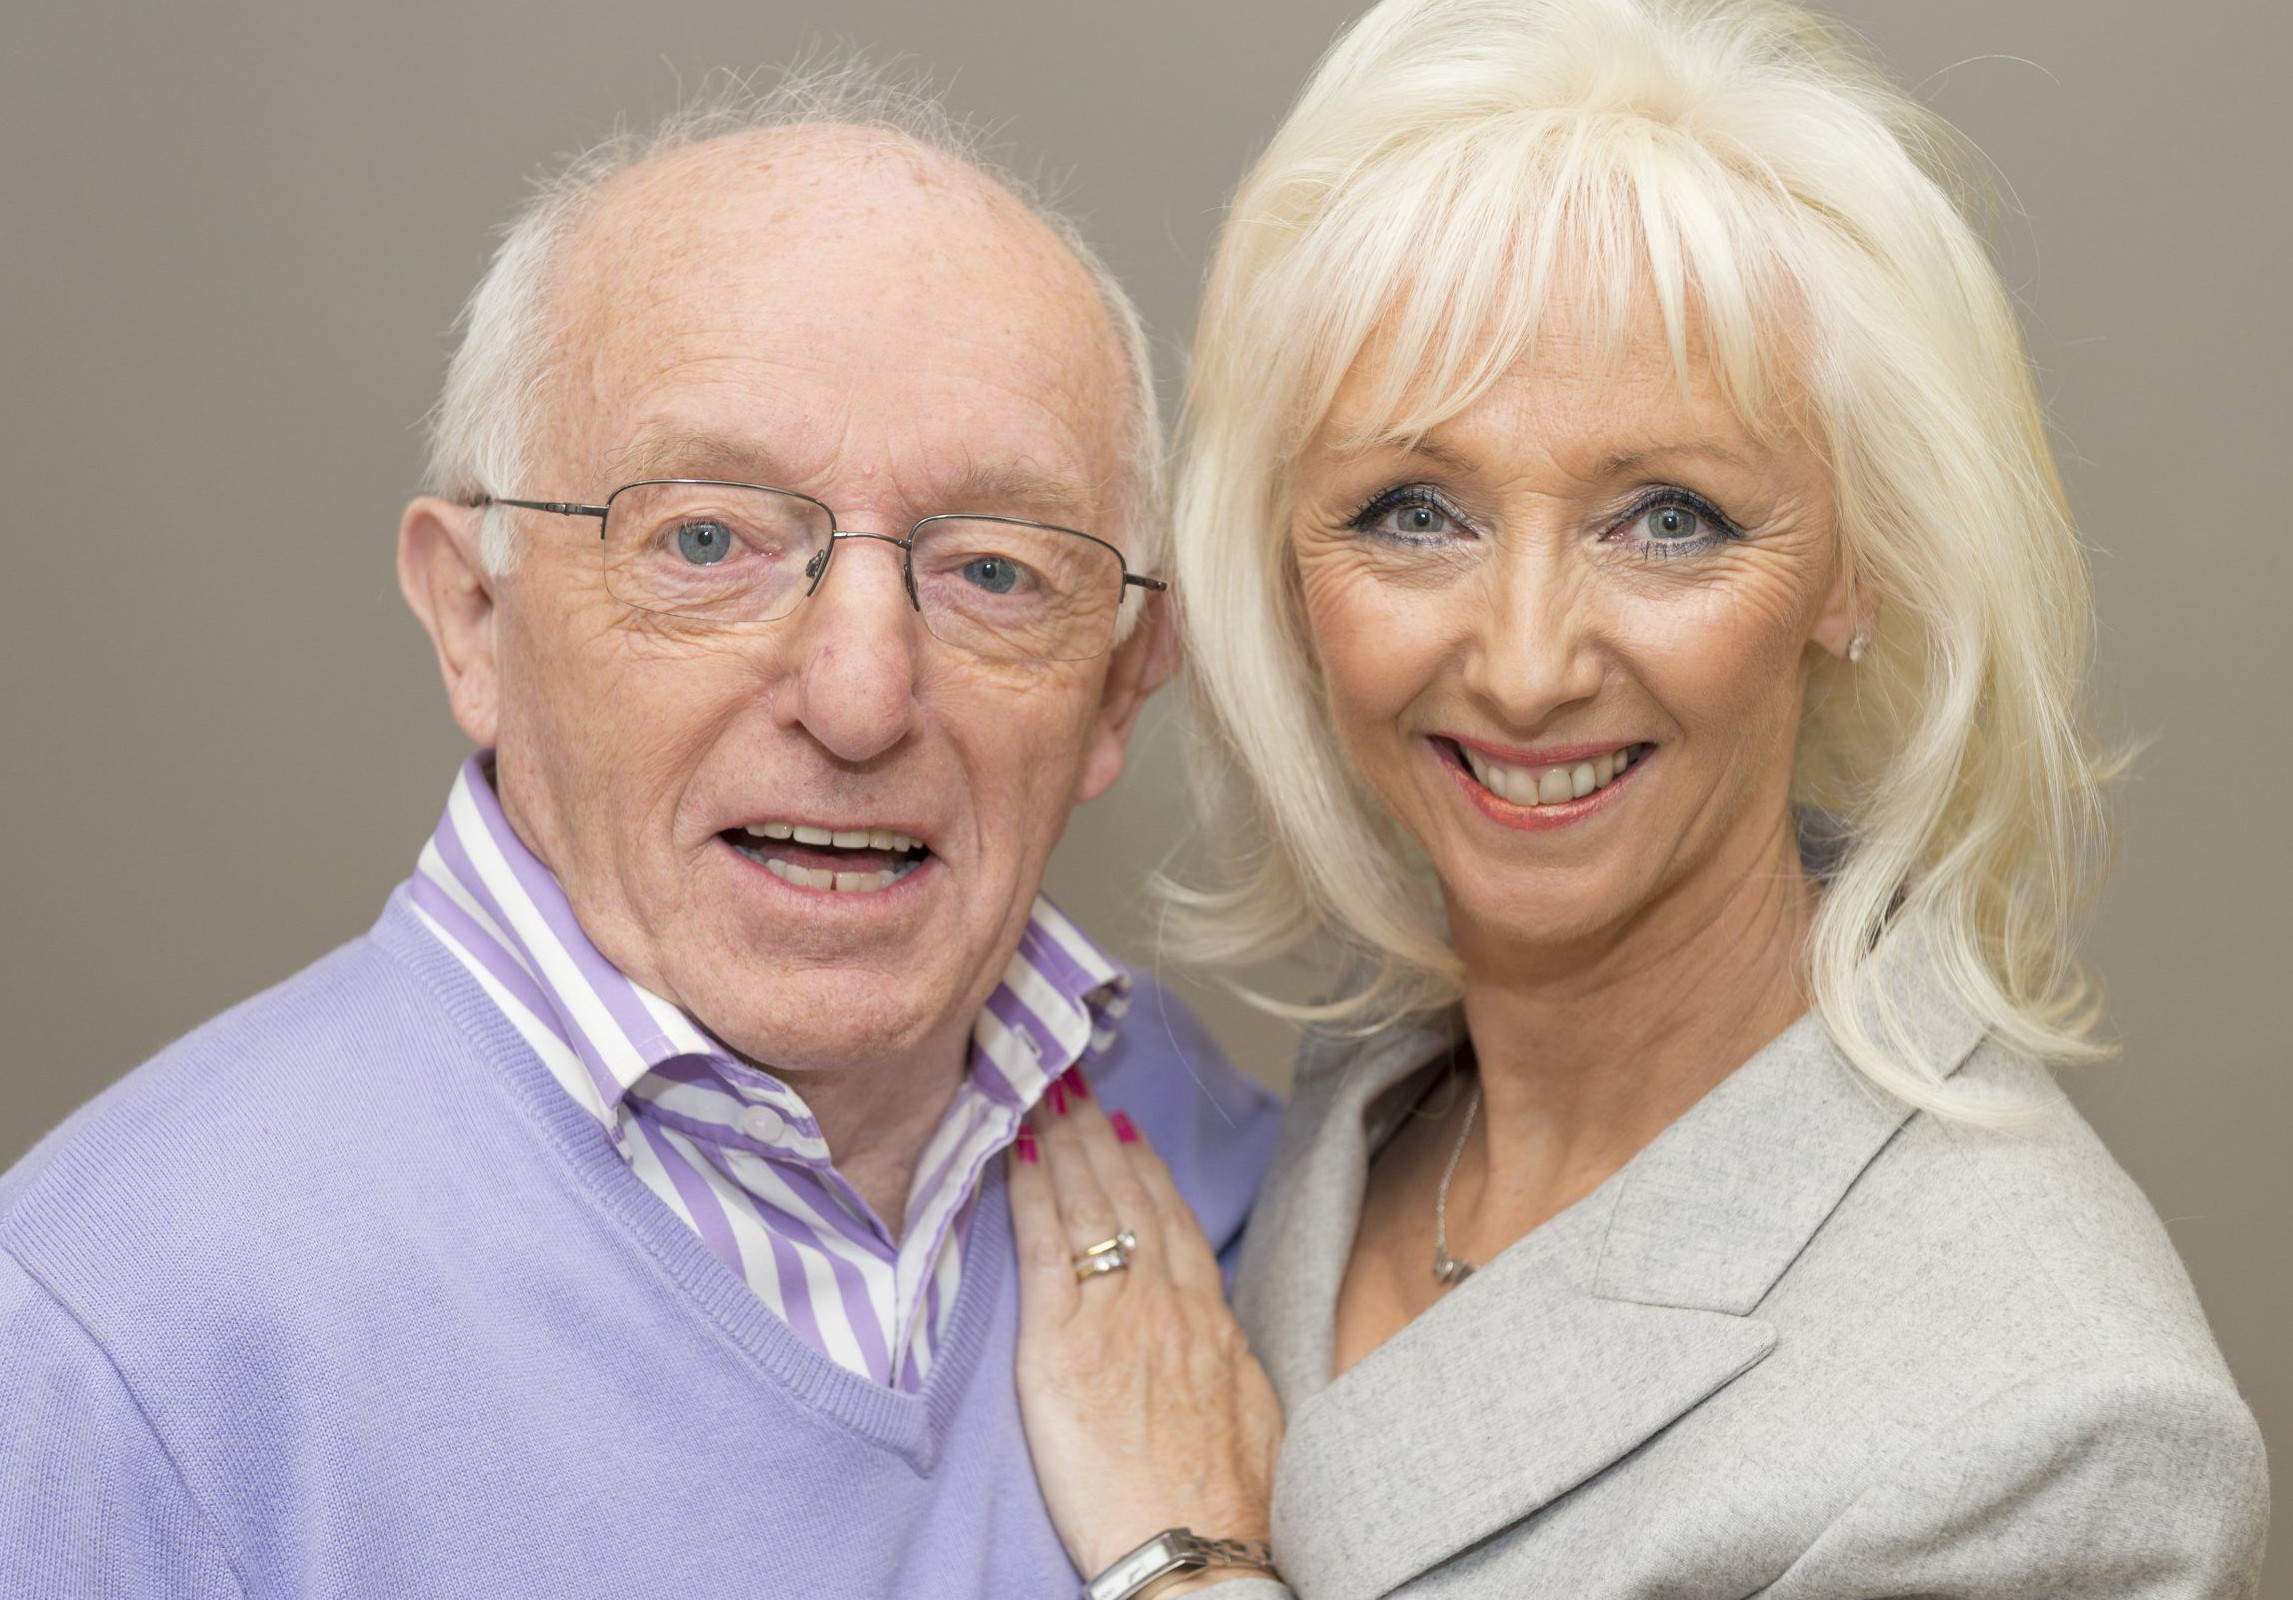 Debbie McGee sends sweet tweet to fan whose father and brother also have terminal illnesses